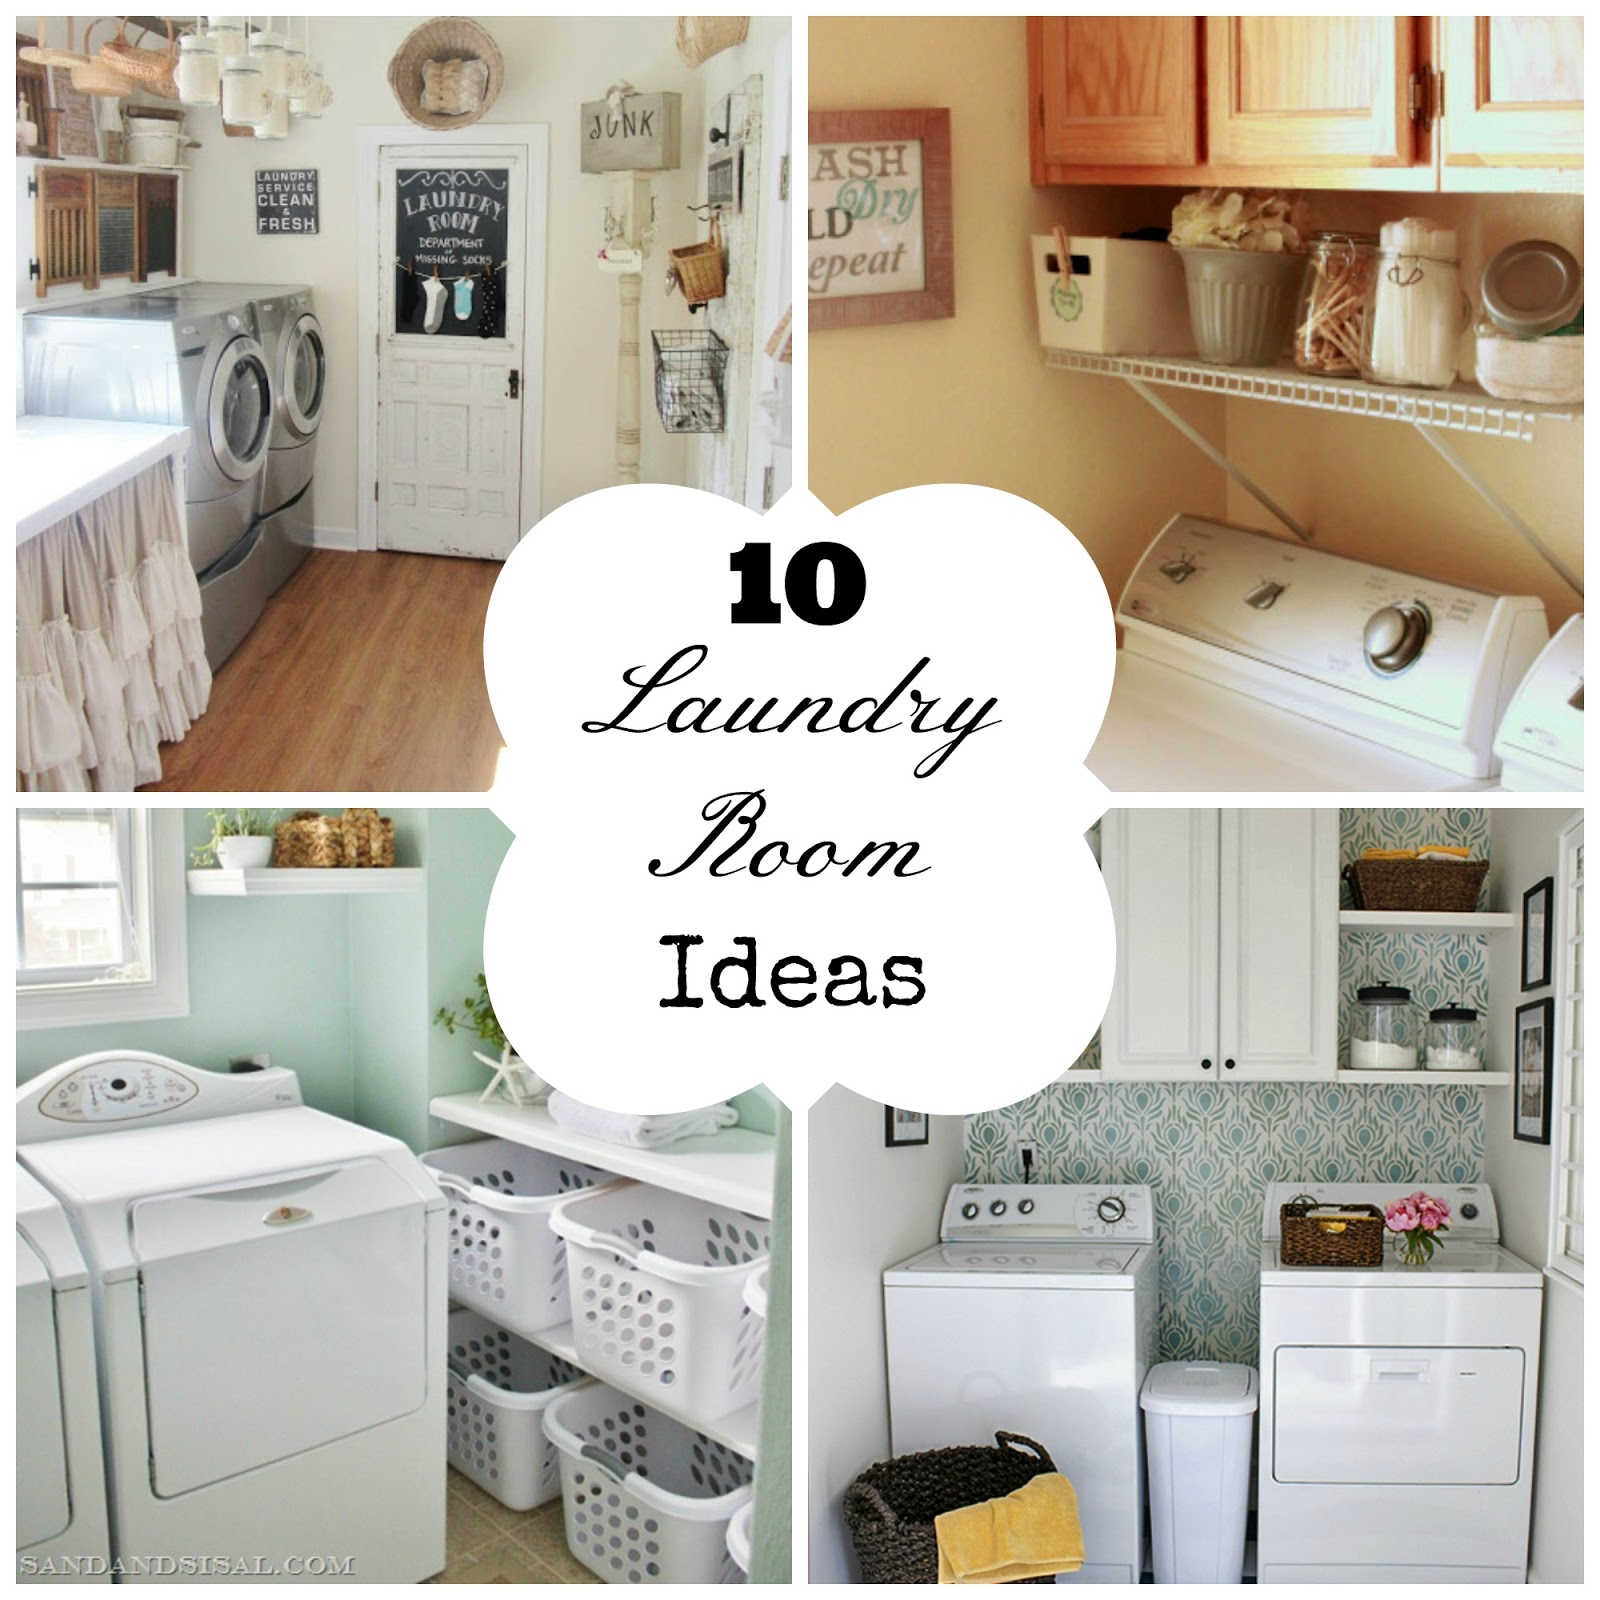 Laundry room ideas fir small rooms ointerest joy studio for Suggested ideas for laundry room design